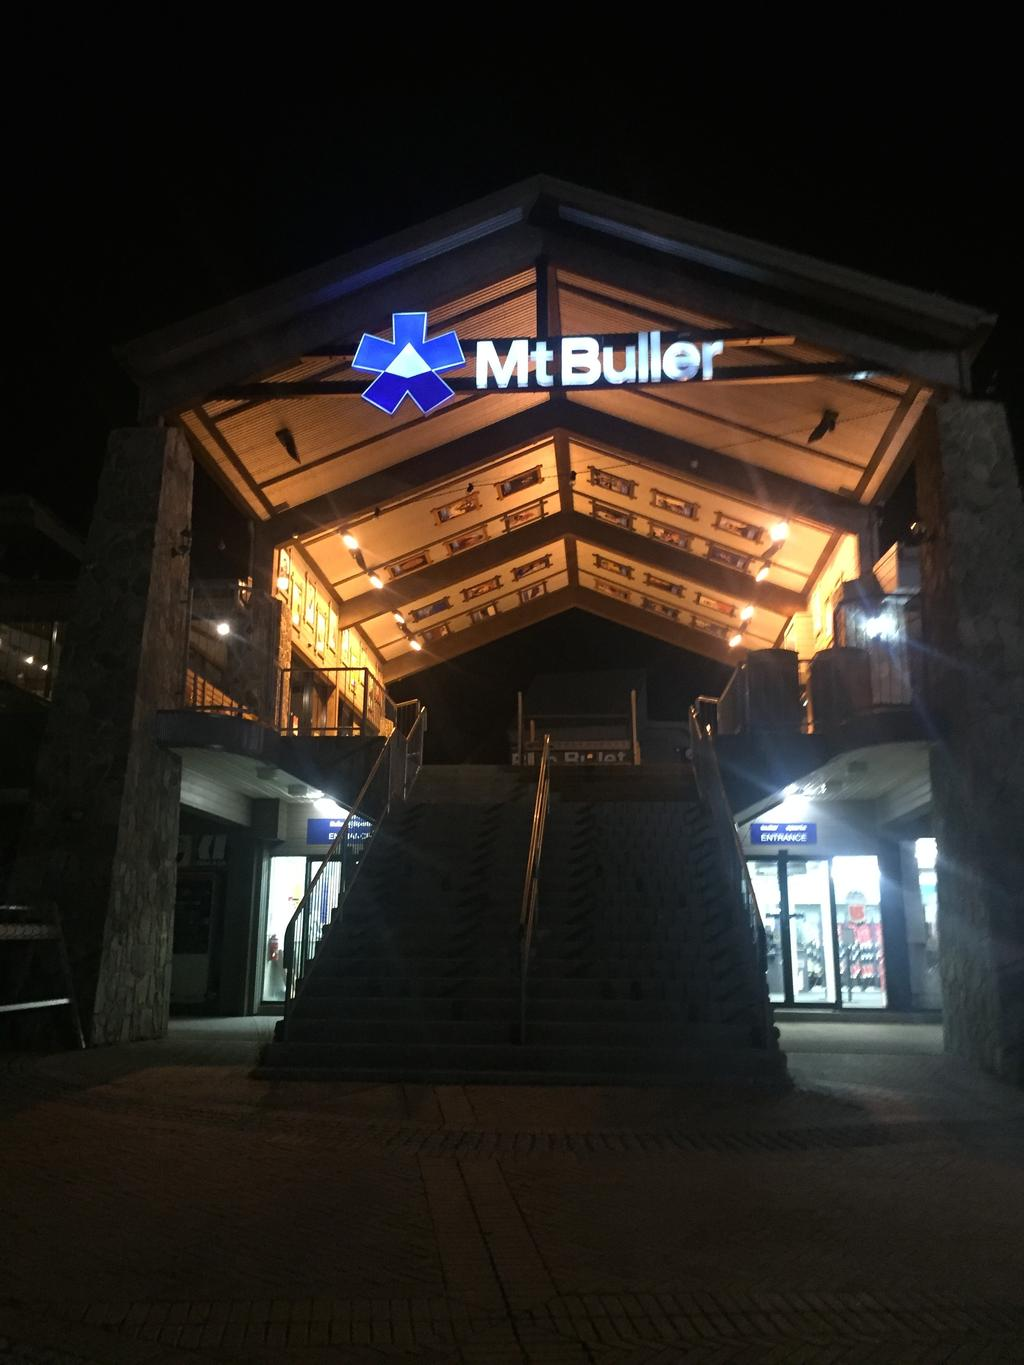 ABOUT MT BULLER Mt Buller is located approx 250km north east of Melbourne (about a 3hr drive). The resort covers over 300 hectares of skiable terrain and features a trail for all skill levels.